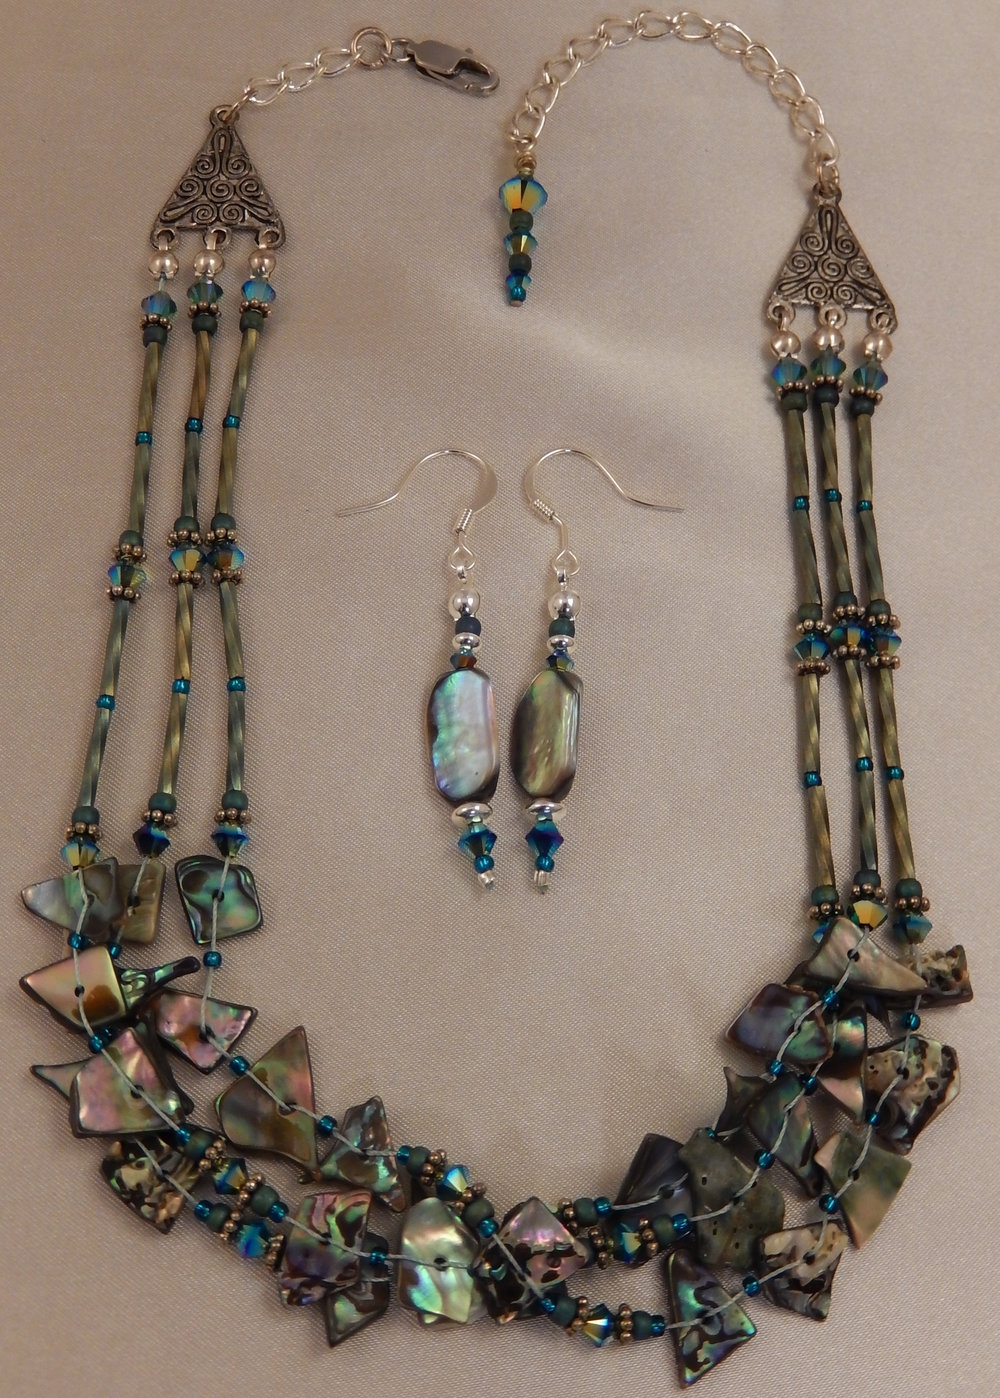 Woven abalone necklace and earring set with swarovski jet crystal accents.